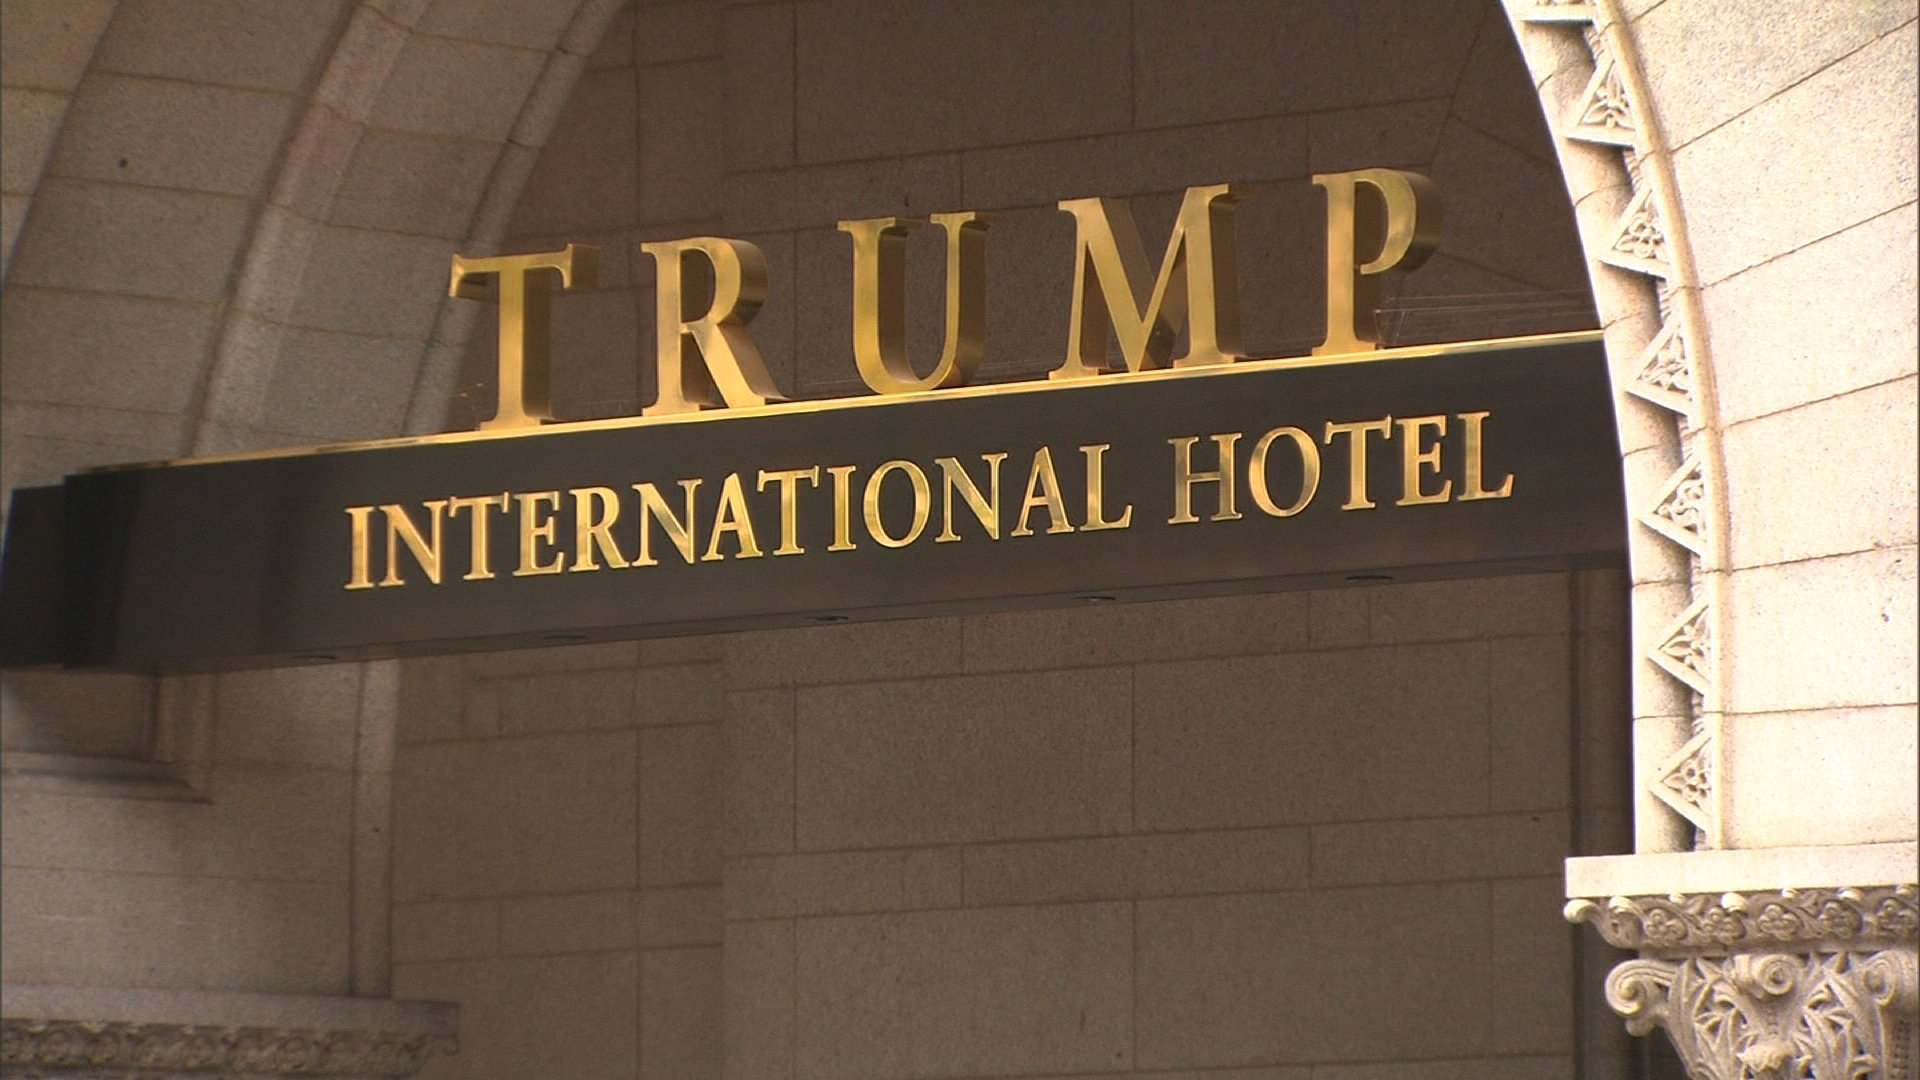 Trump International Hotel in Washington, D.C. is seen in an undated photo. (Credit: CNN)